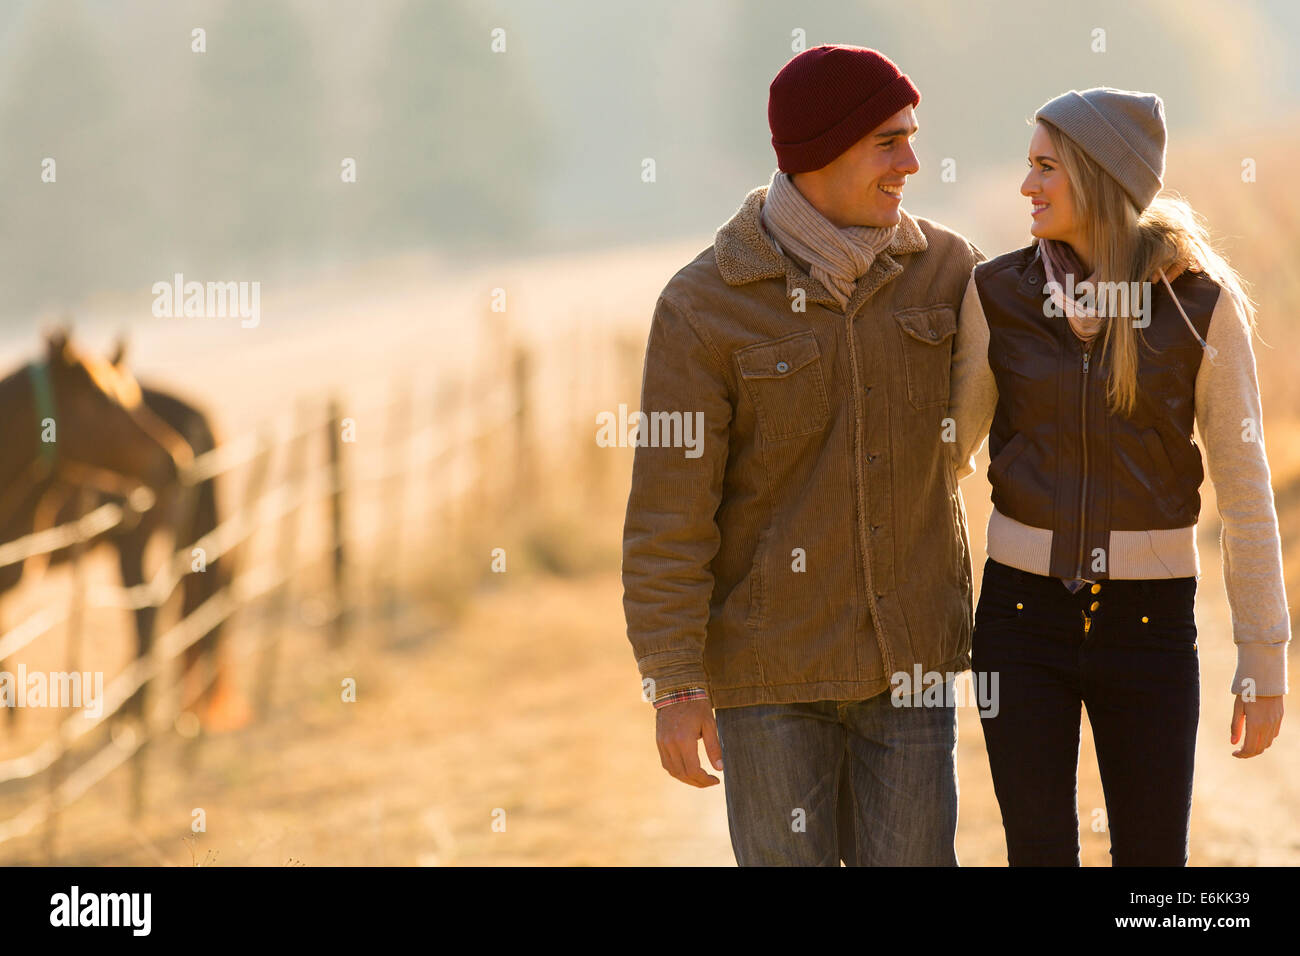 Adorable jeune couple walking in countryside Photo Stock